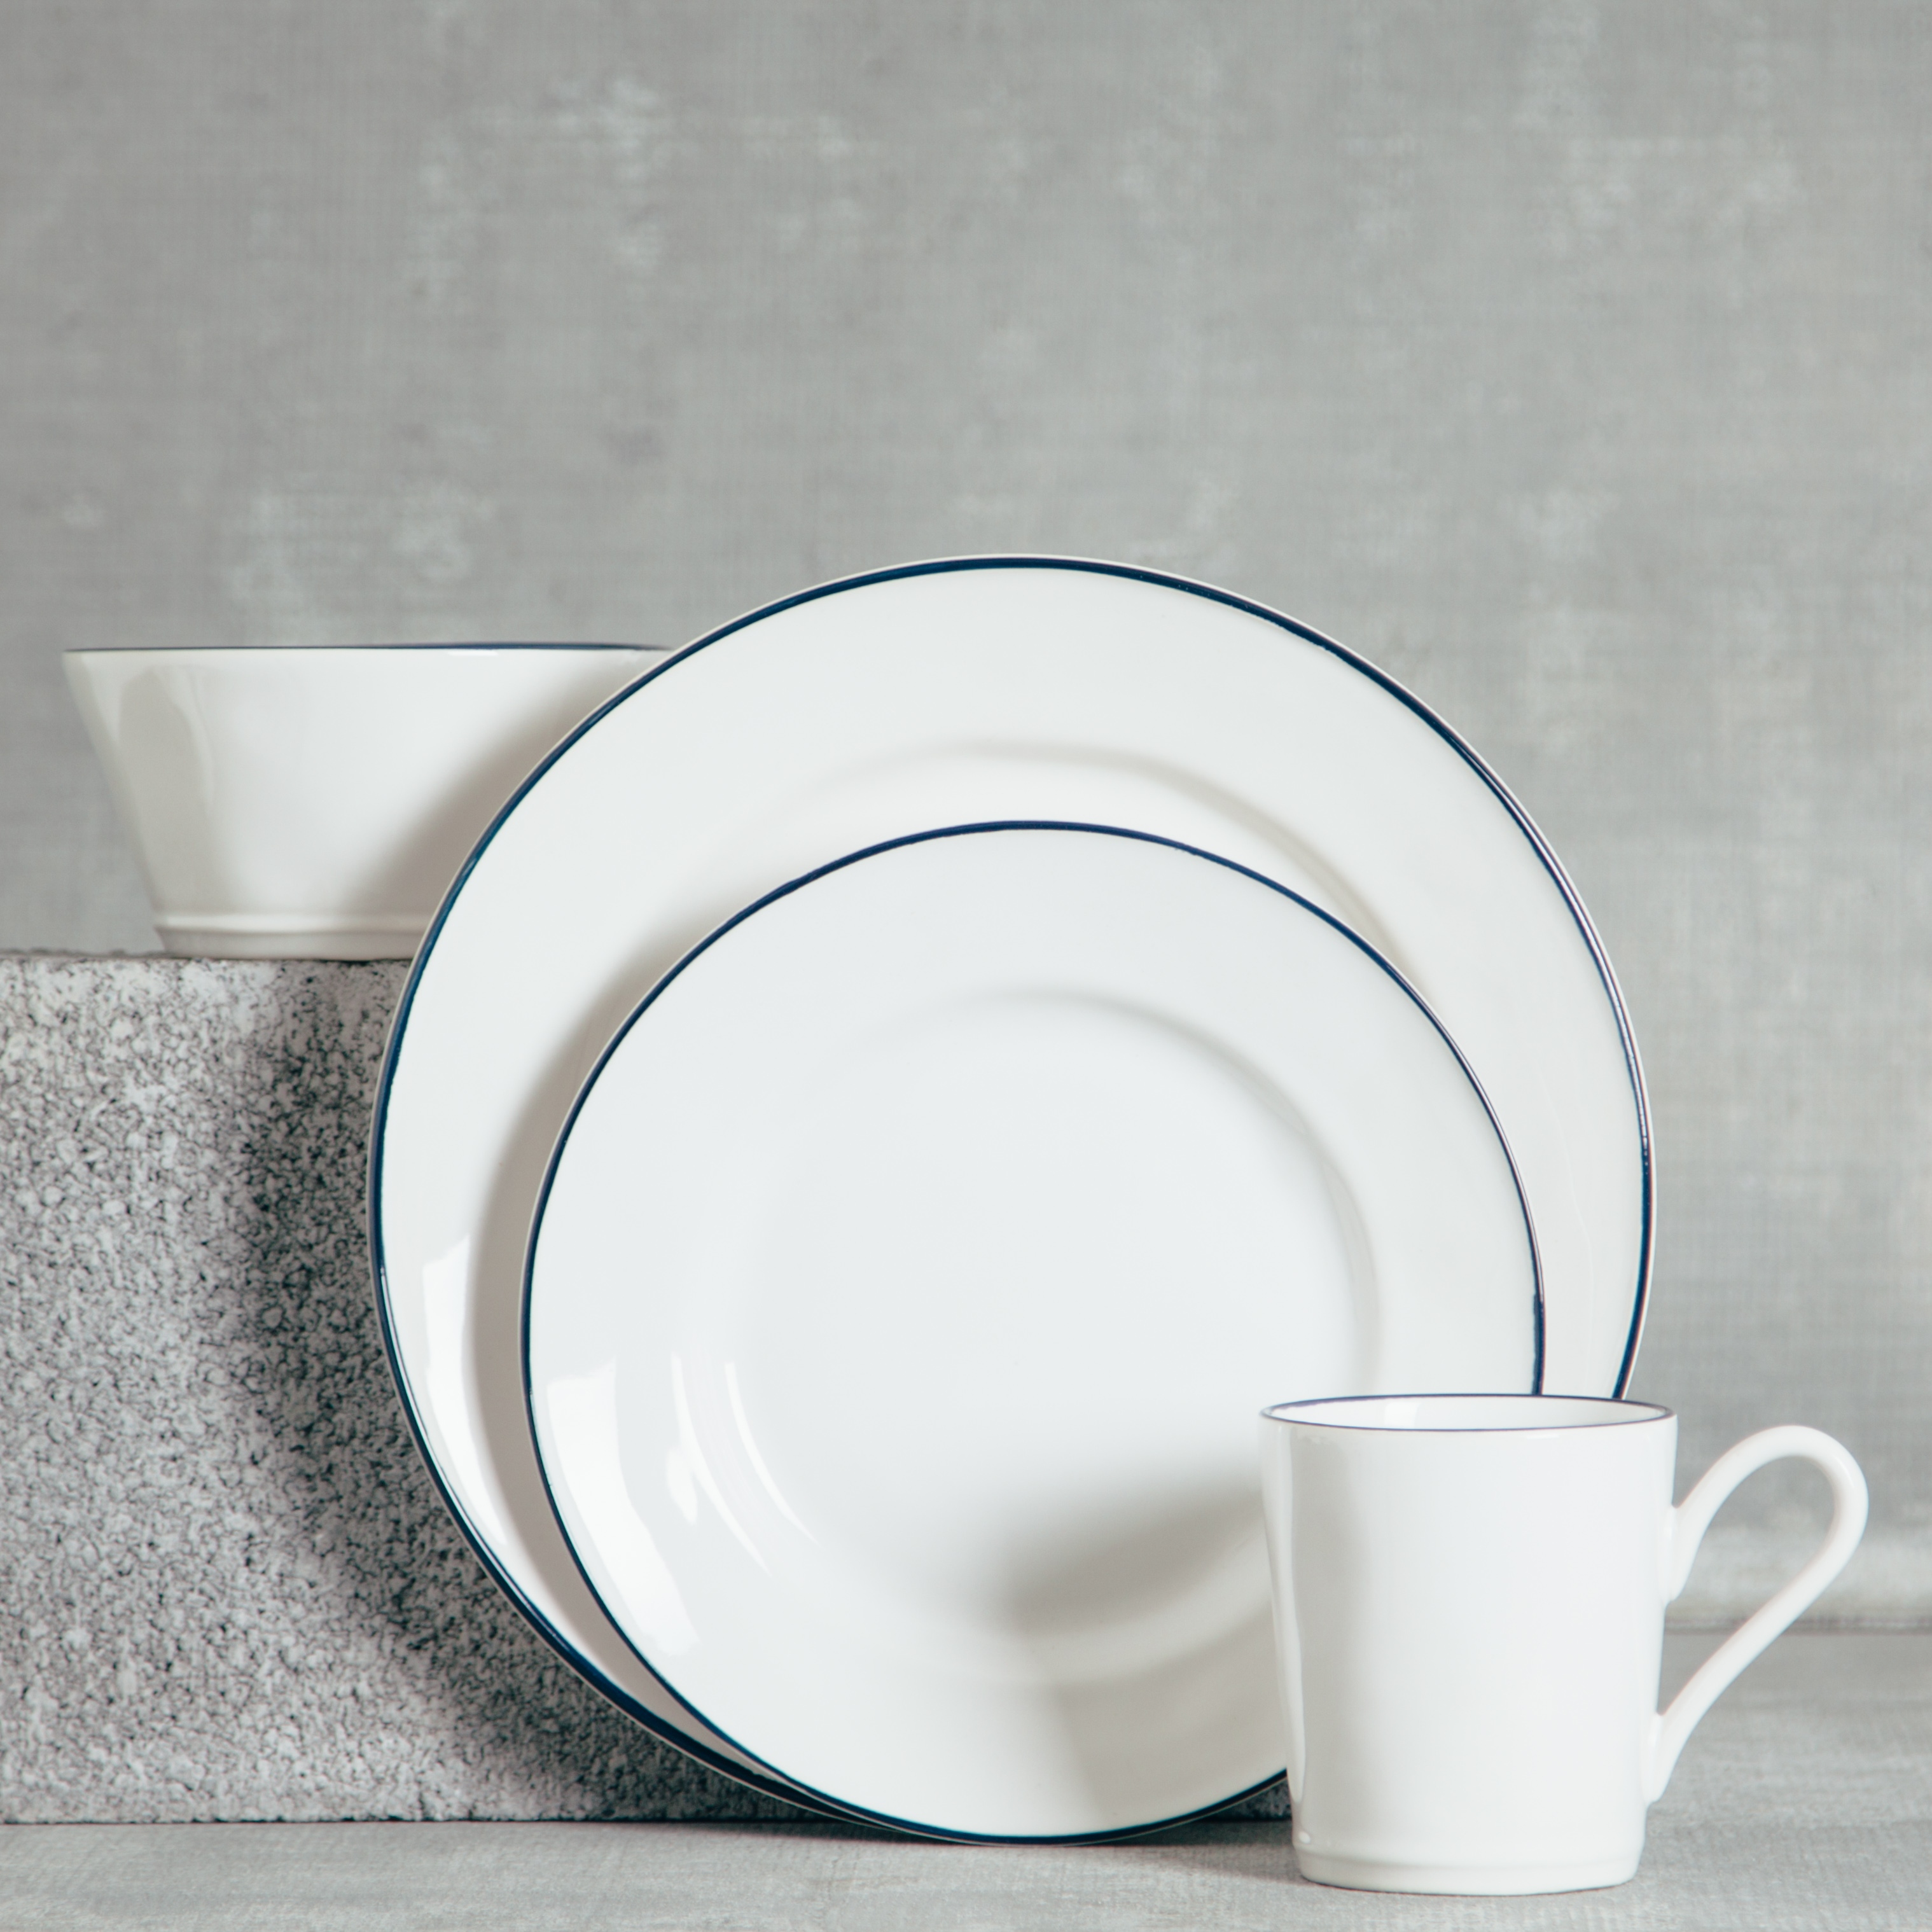 Relish Decor Costa Nova Dinnerware Beja Blue Place Setting & Beja White Dinnerware Sets - Relish Decor